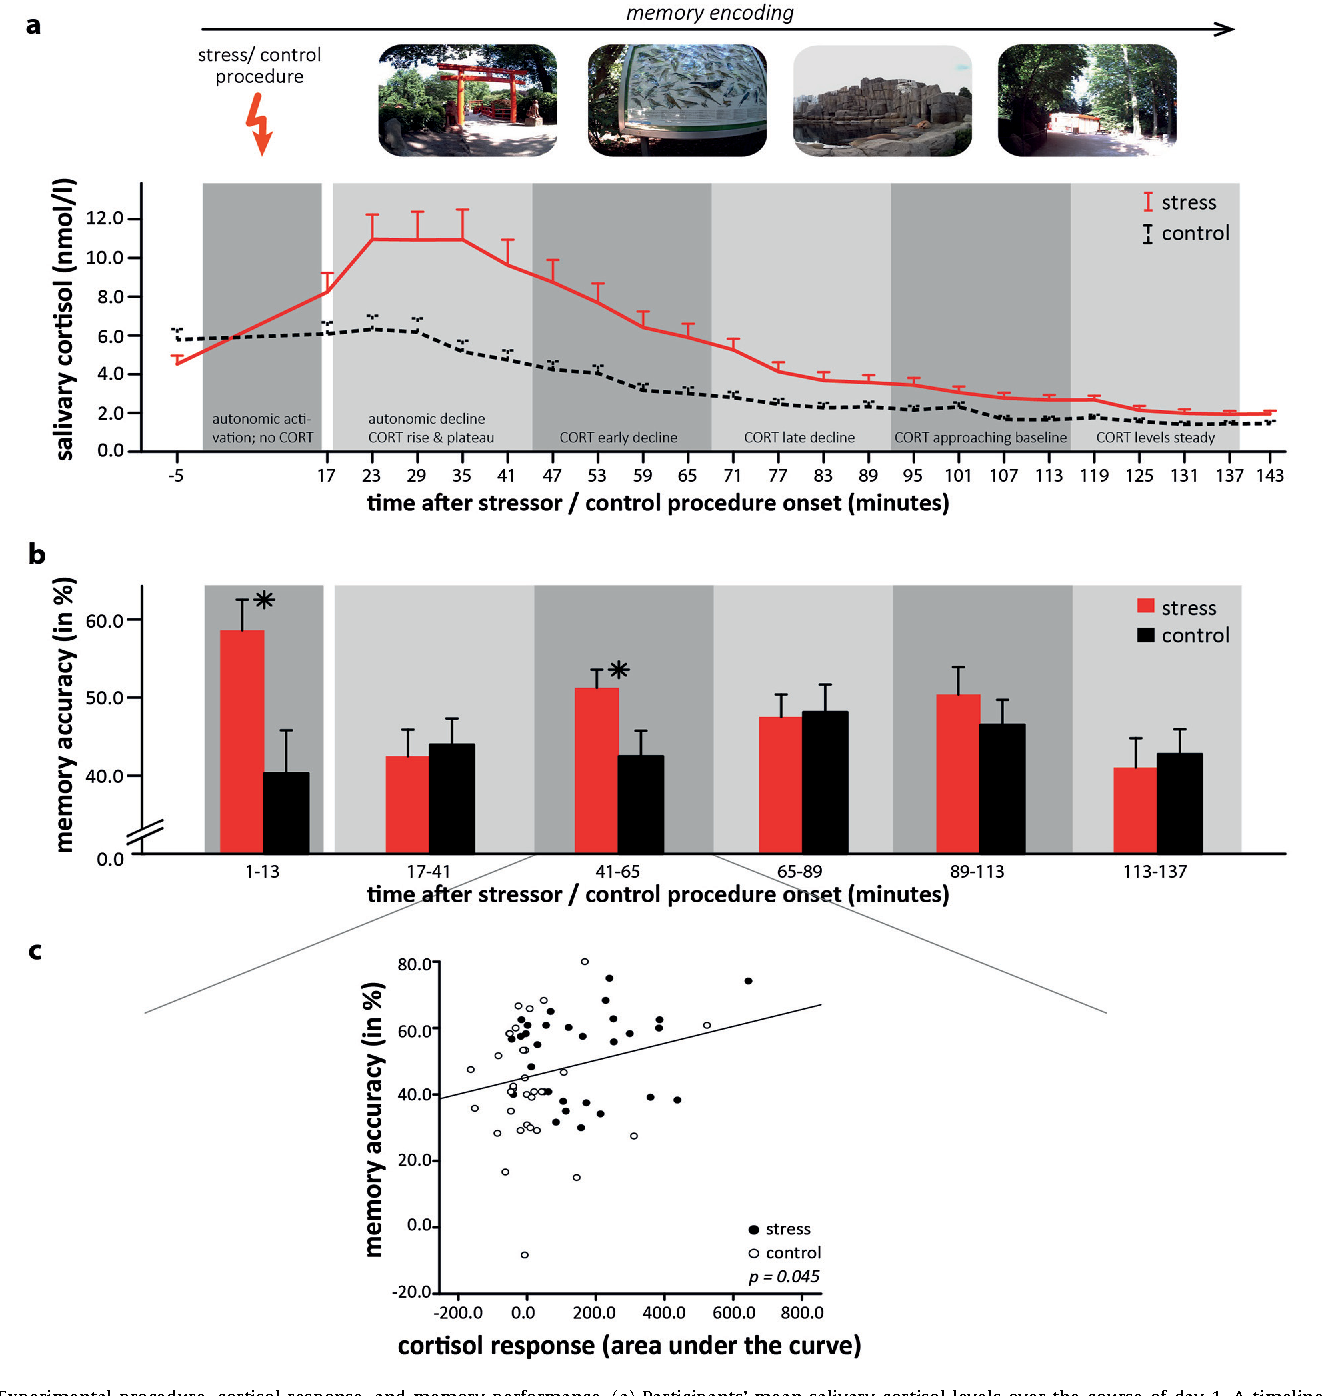 How Do Various Cortisol Levels Impact >> Figure 2 From Stress In The Zoo Tracking The Impact Of Stress On